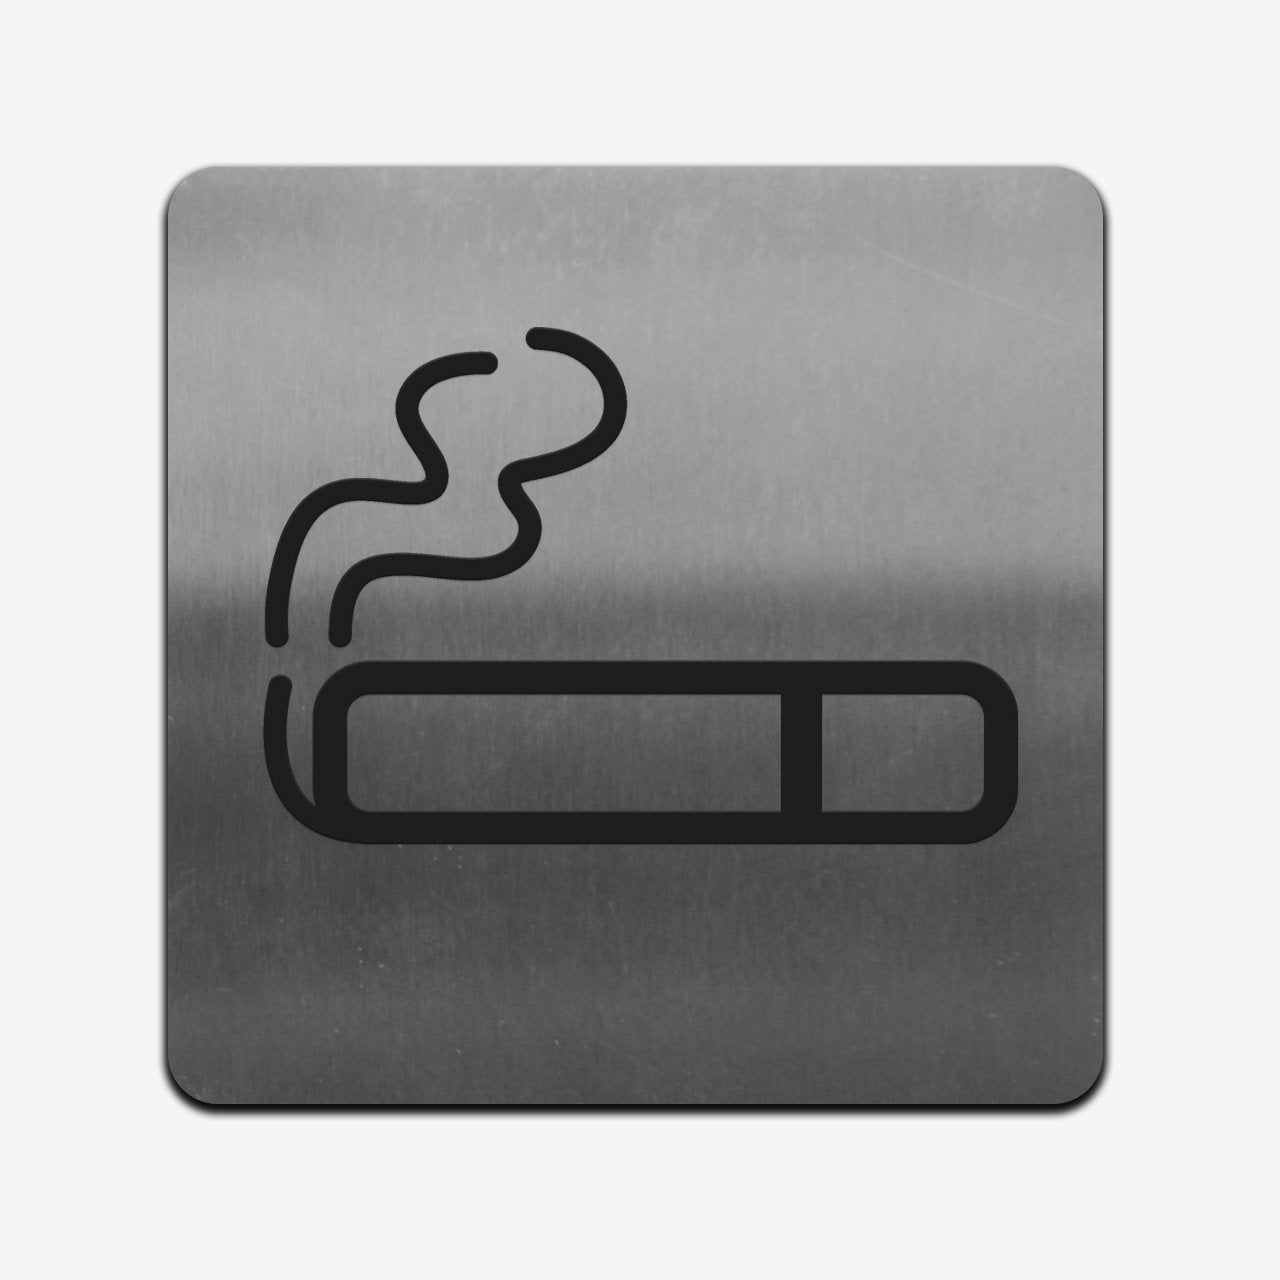 Smoke Zone - Stainless Steel Sign Information signs square Bsign